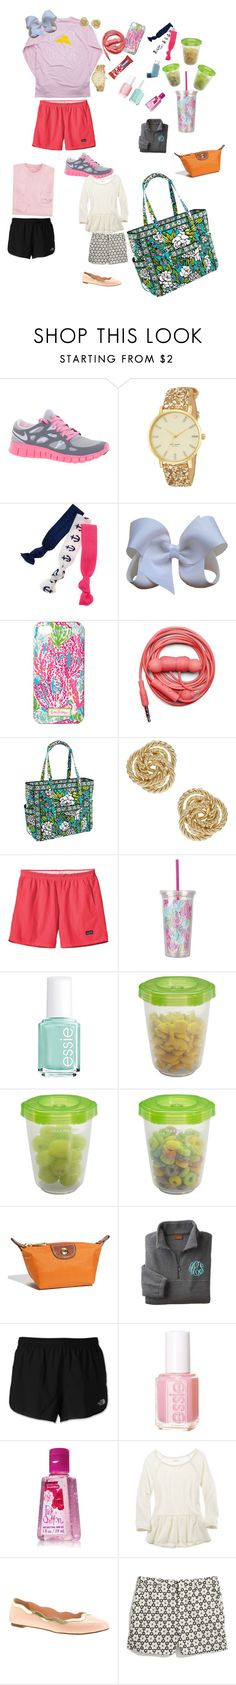 """Weekend with the grandparents"" by ava-lindsey ❤ liked on Polyvore featuring NIKE, Kate Spade, Twistband, Hanes, Lilly Pulitzer, Urbanears, Vera Bradley, Patagonia, Essie and Gerber"